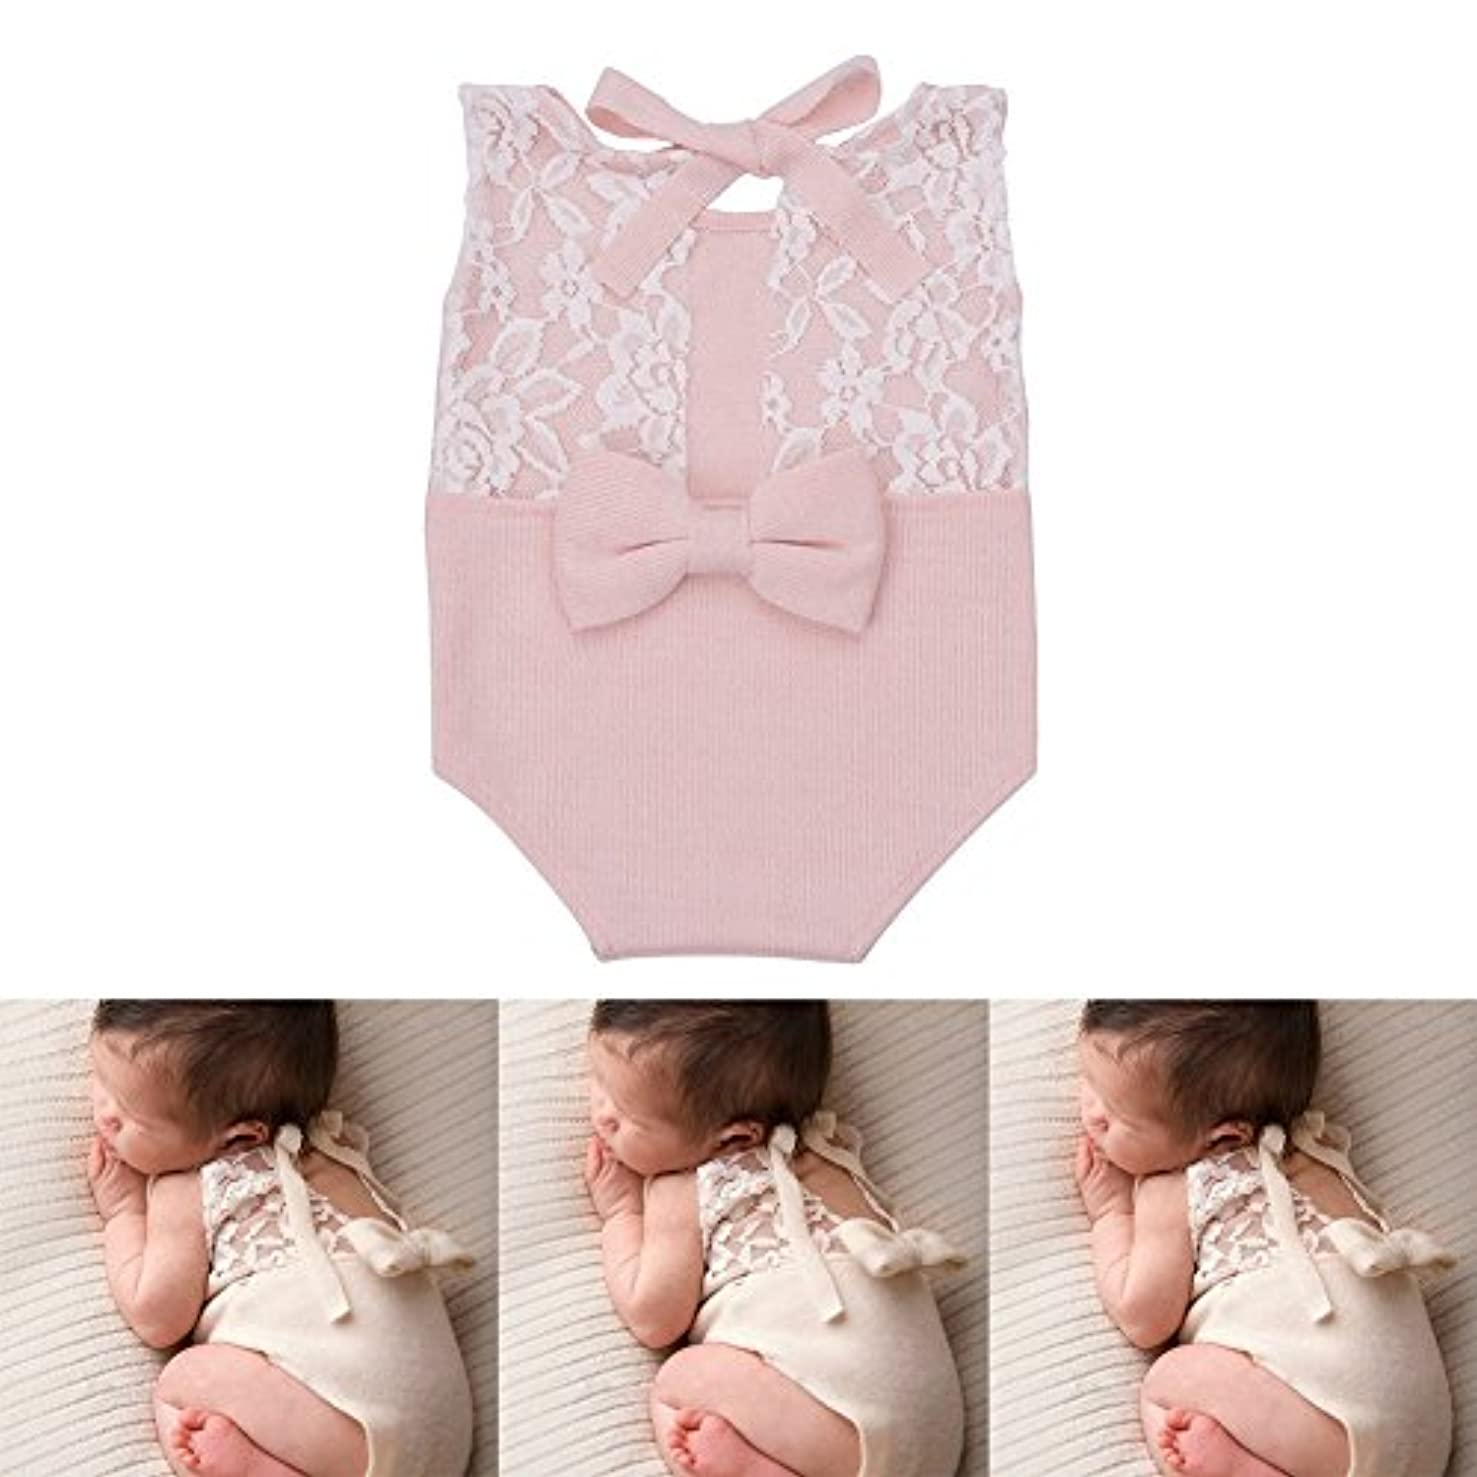 Zeroest Baby Photography Props Rompers Newborn Girl Photo Shoot Outfits Lace Costume Infant Crochet Knitted Clothes (Pink)